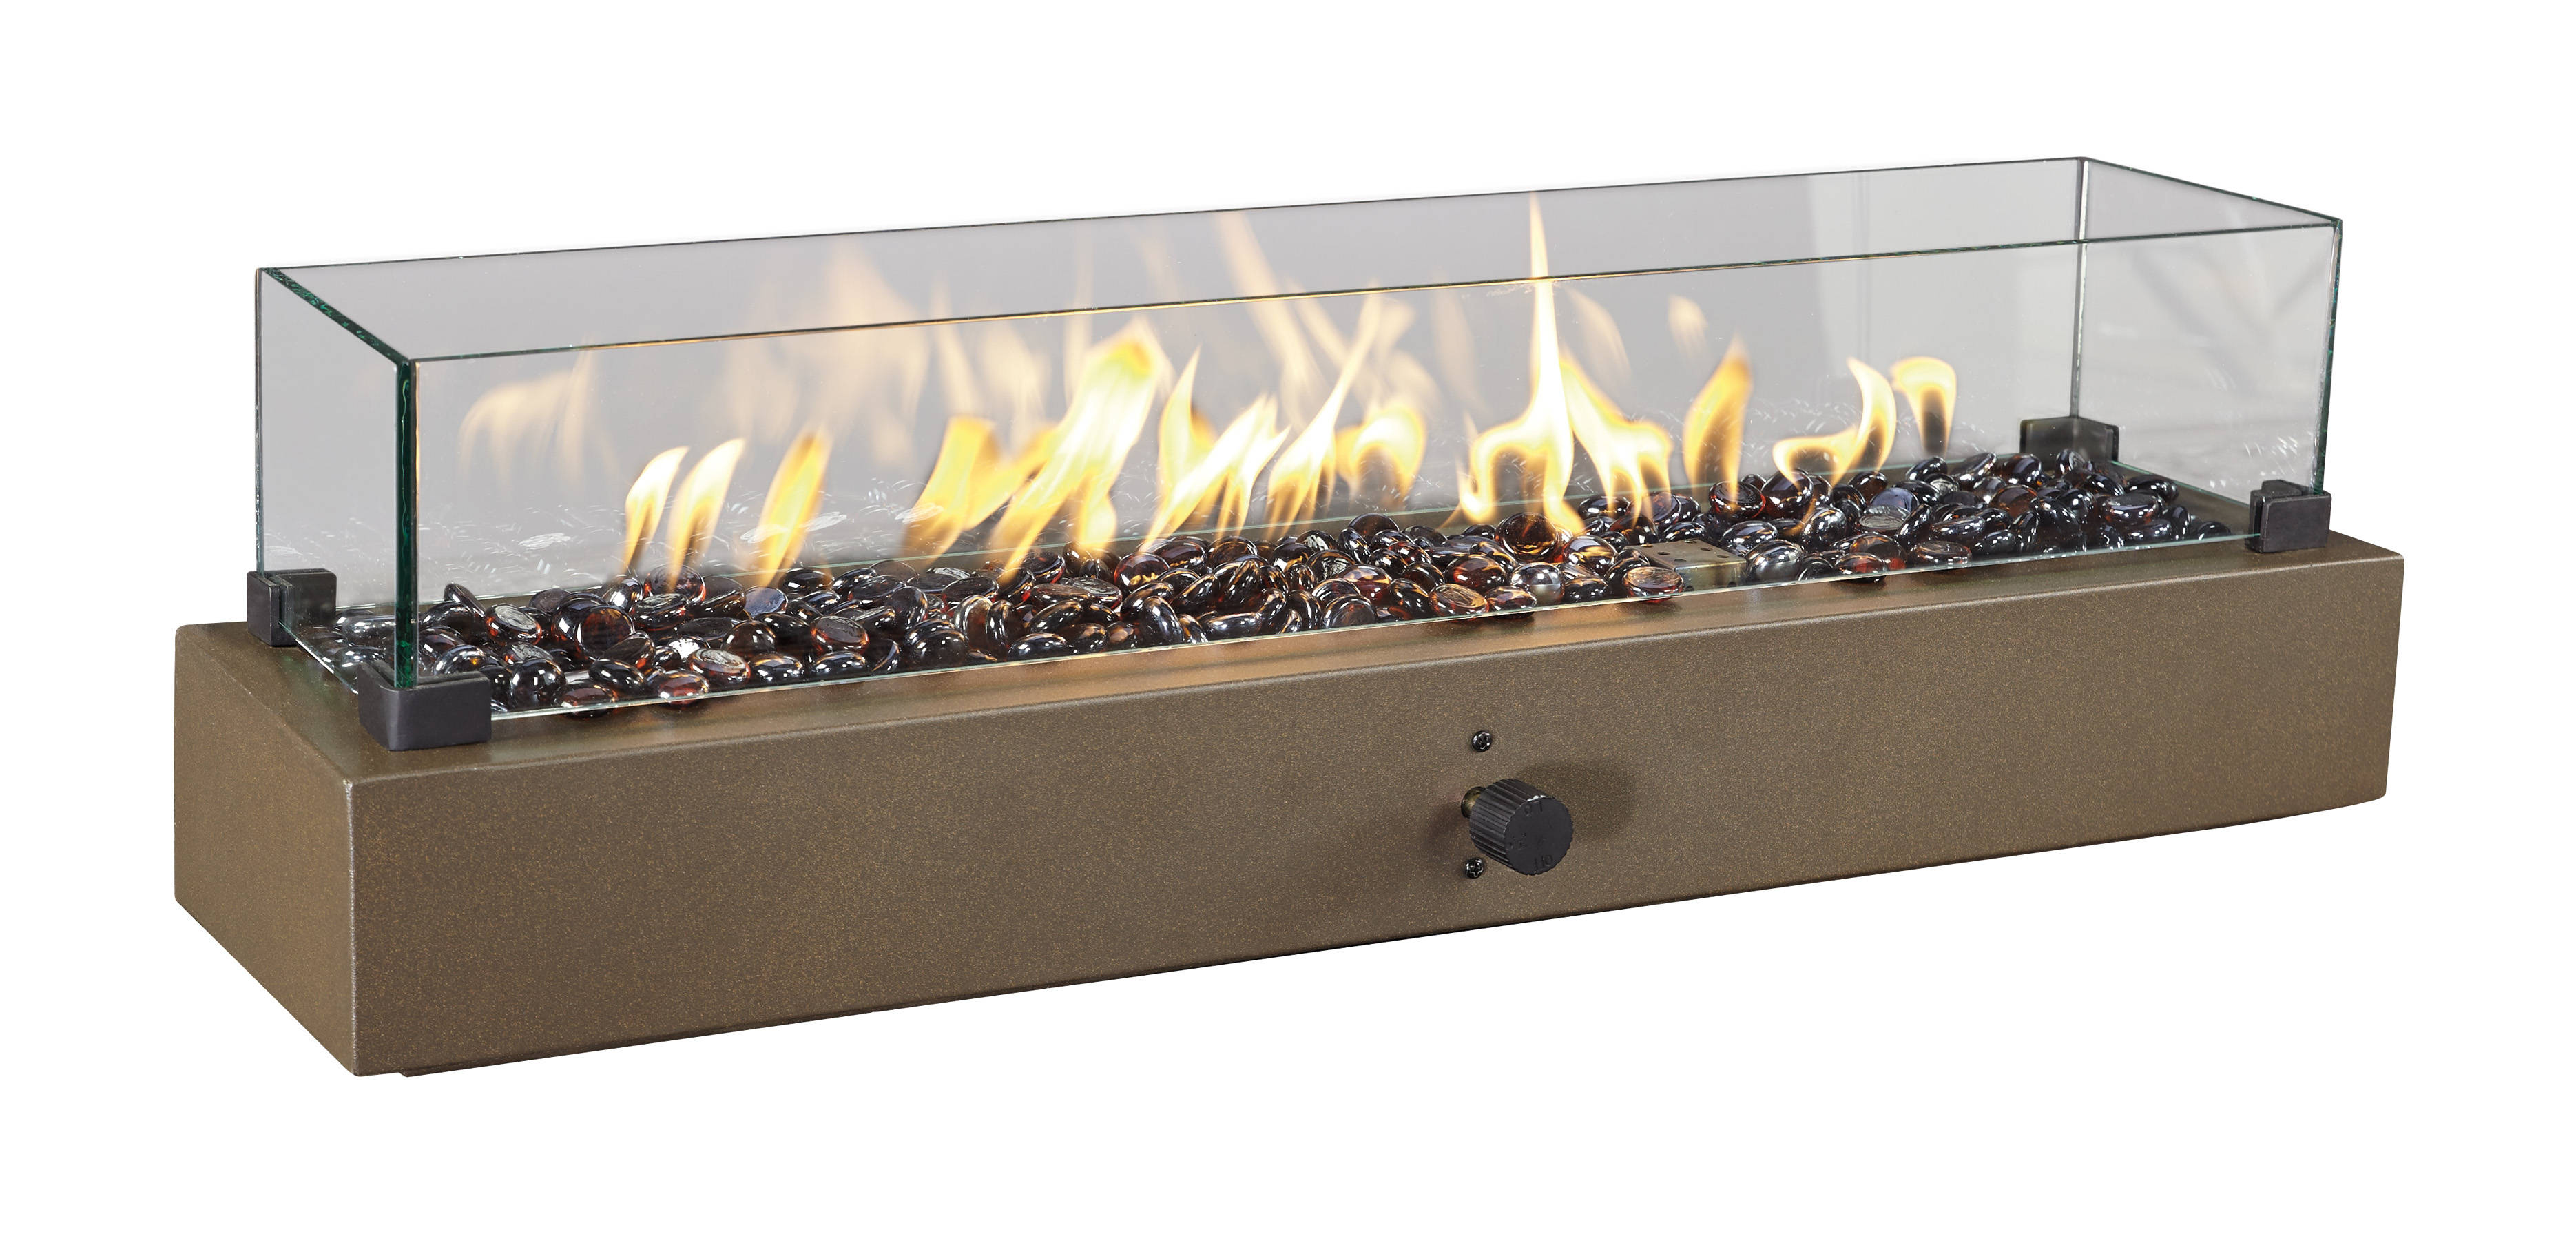 Ashley Furniture Hatchlands Table Top Fire Bowl The